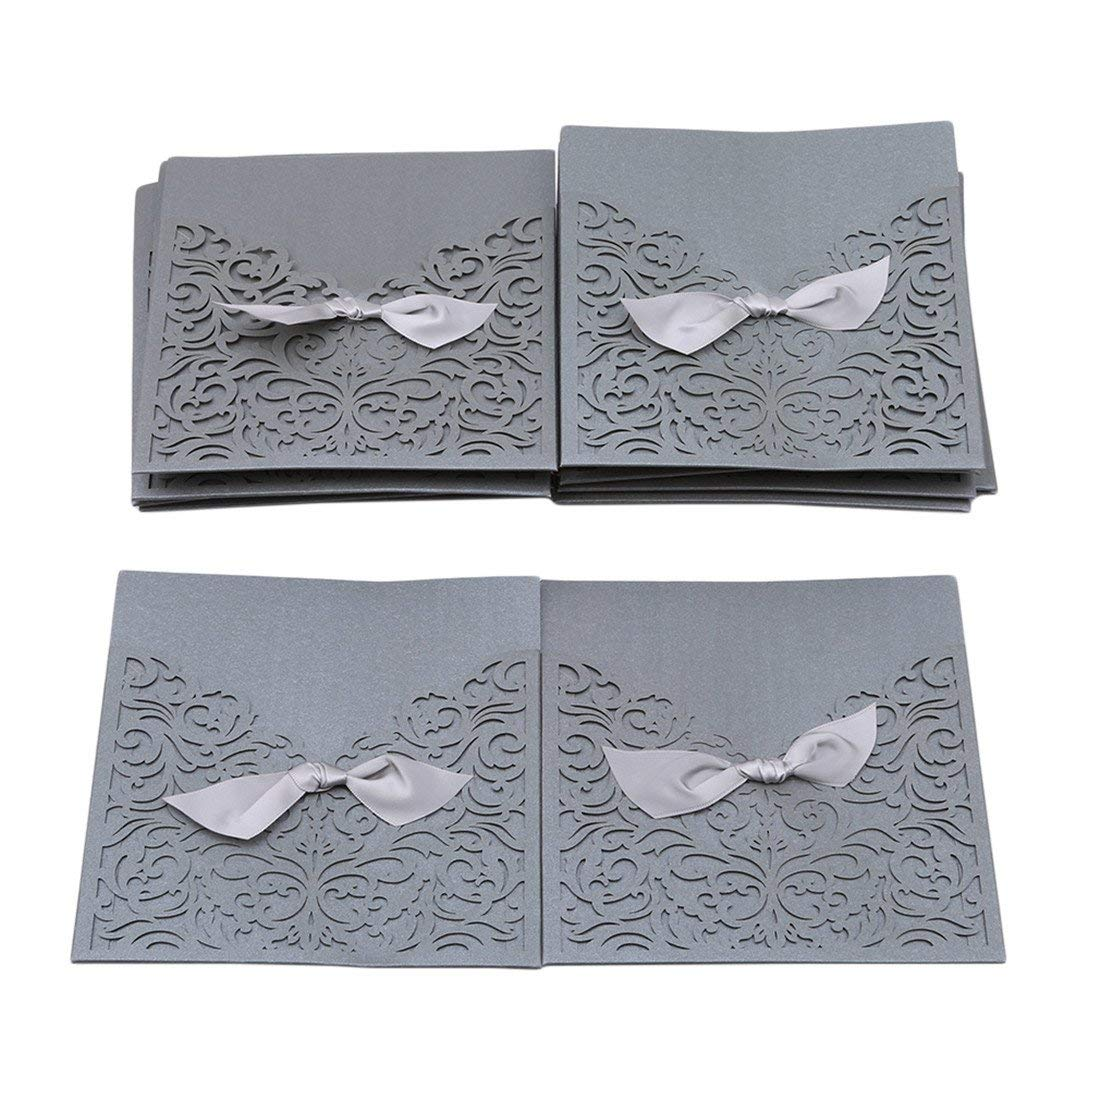 UNKE 25 Pcs Elegant Laser Cut Lace Square Wedding Party Invitations Cards with Envelopes for Wedding Marriage Birthday Bridal Bride Shower Party,Silver Gray